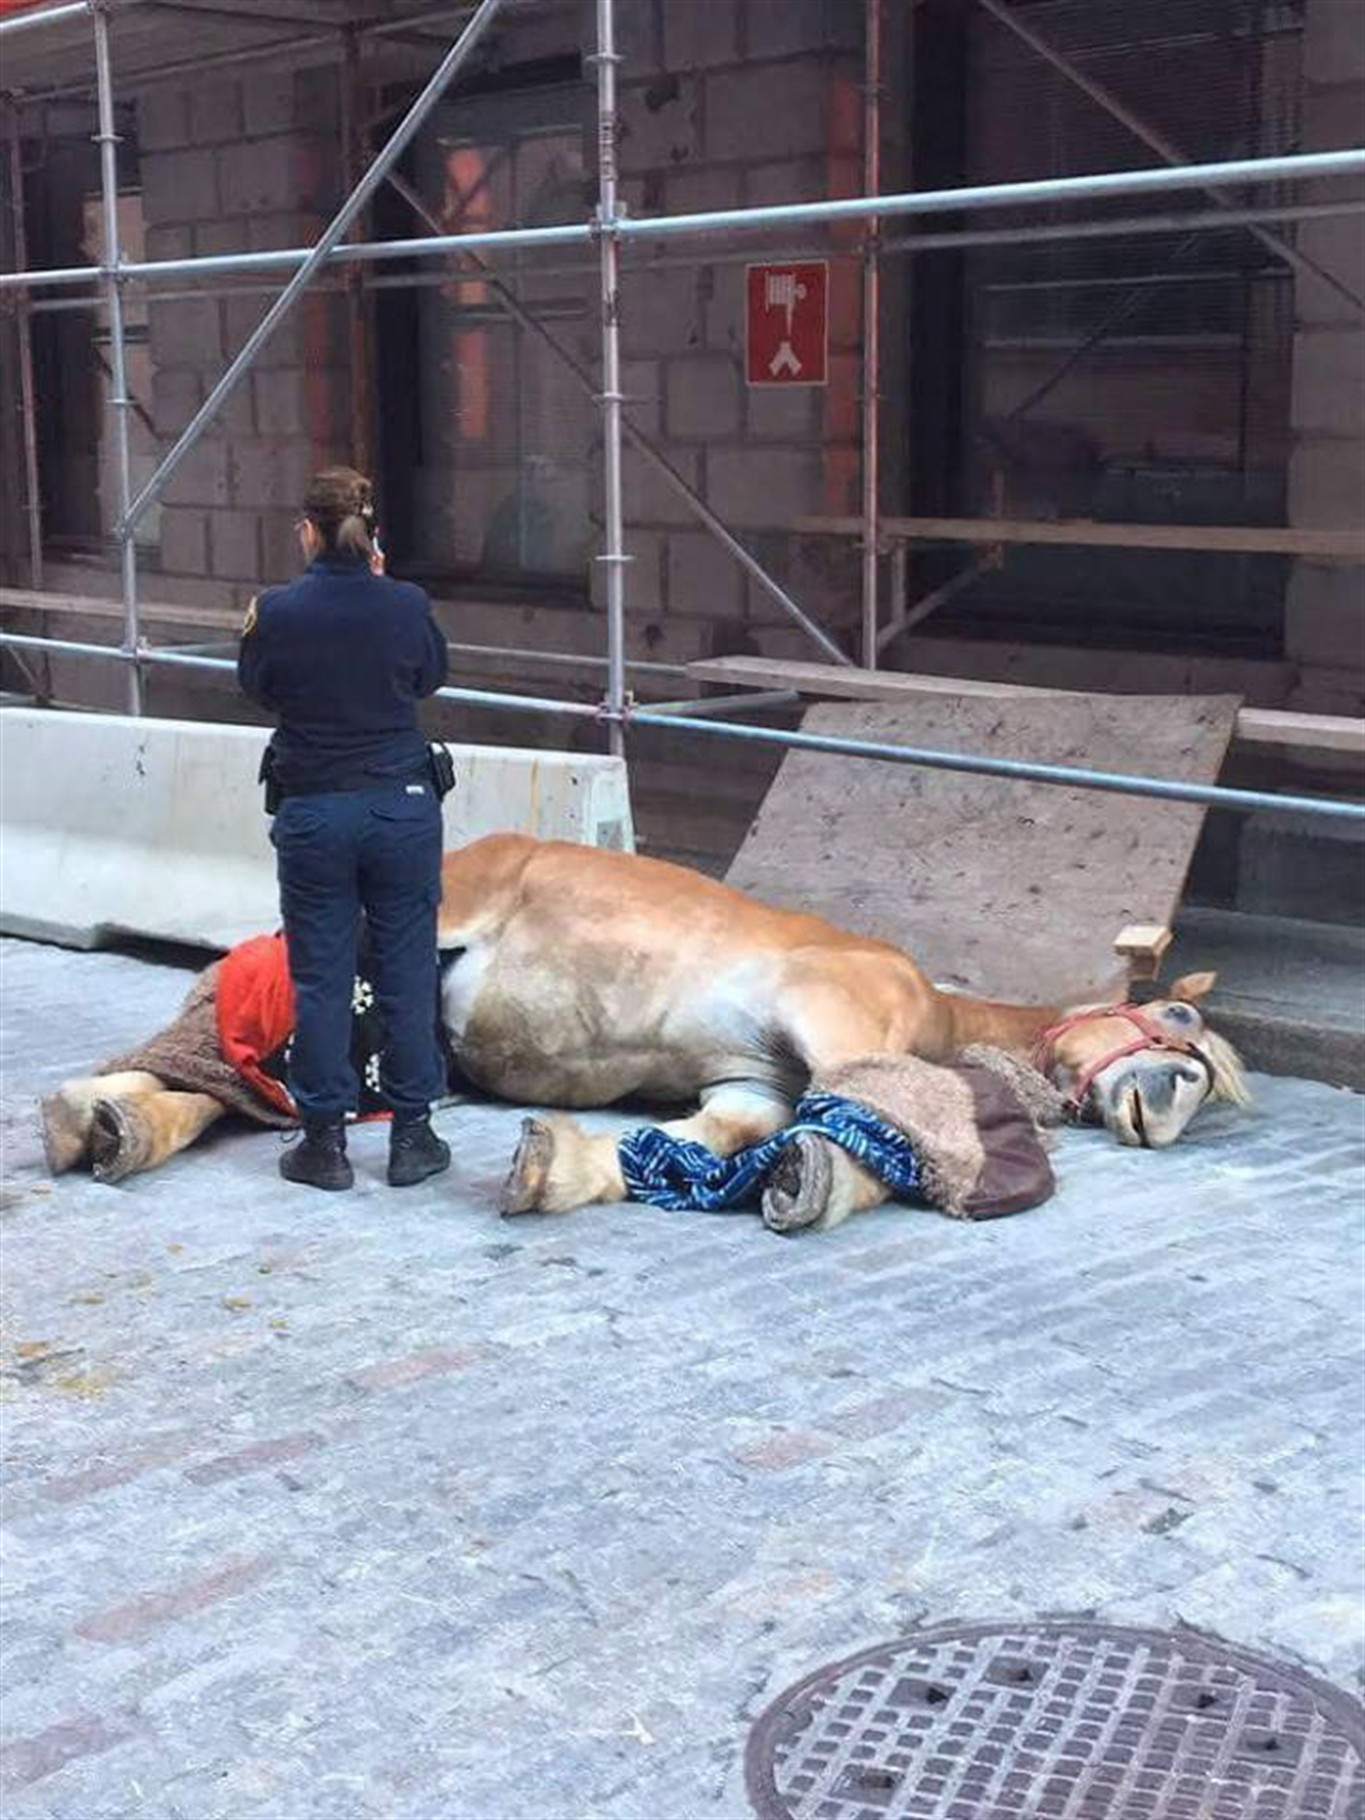 Death Of Caleche Horse Further Proof Industry Needs To Wind Down How Build A Barn Hometips Collapsed Is Seen On The Streets Montreal Sunday November 4 2018 In This Handout Photo Montreals Mayor Says Shes More Convinced Than Ever